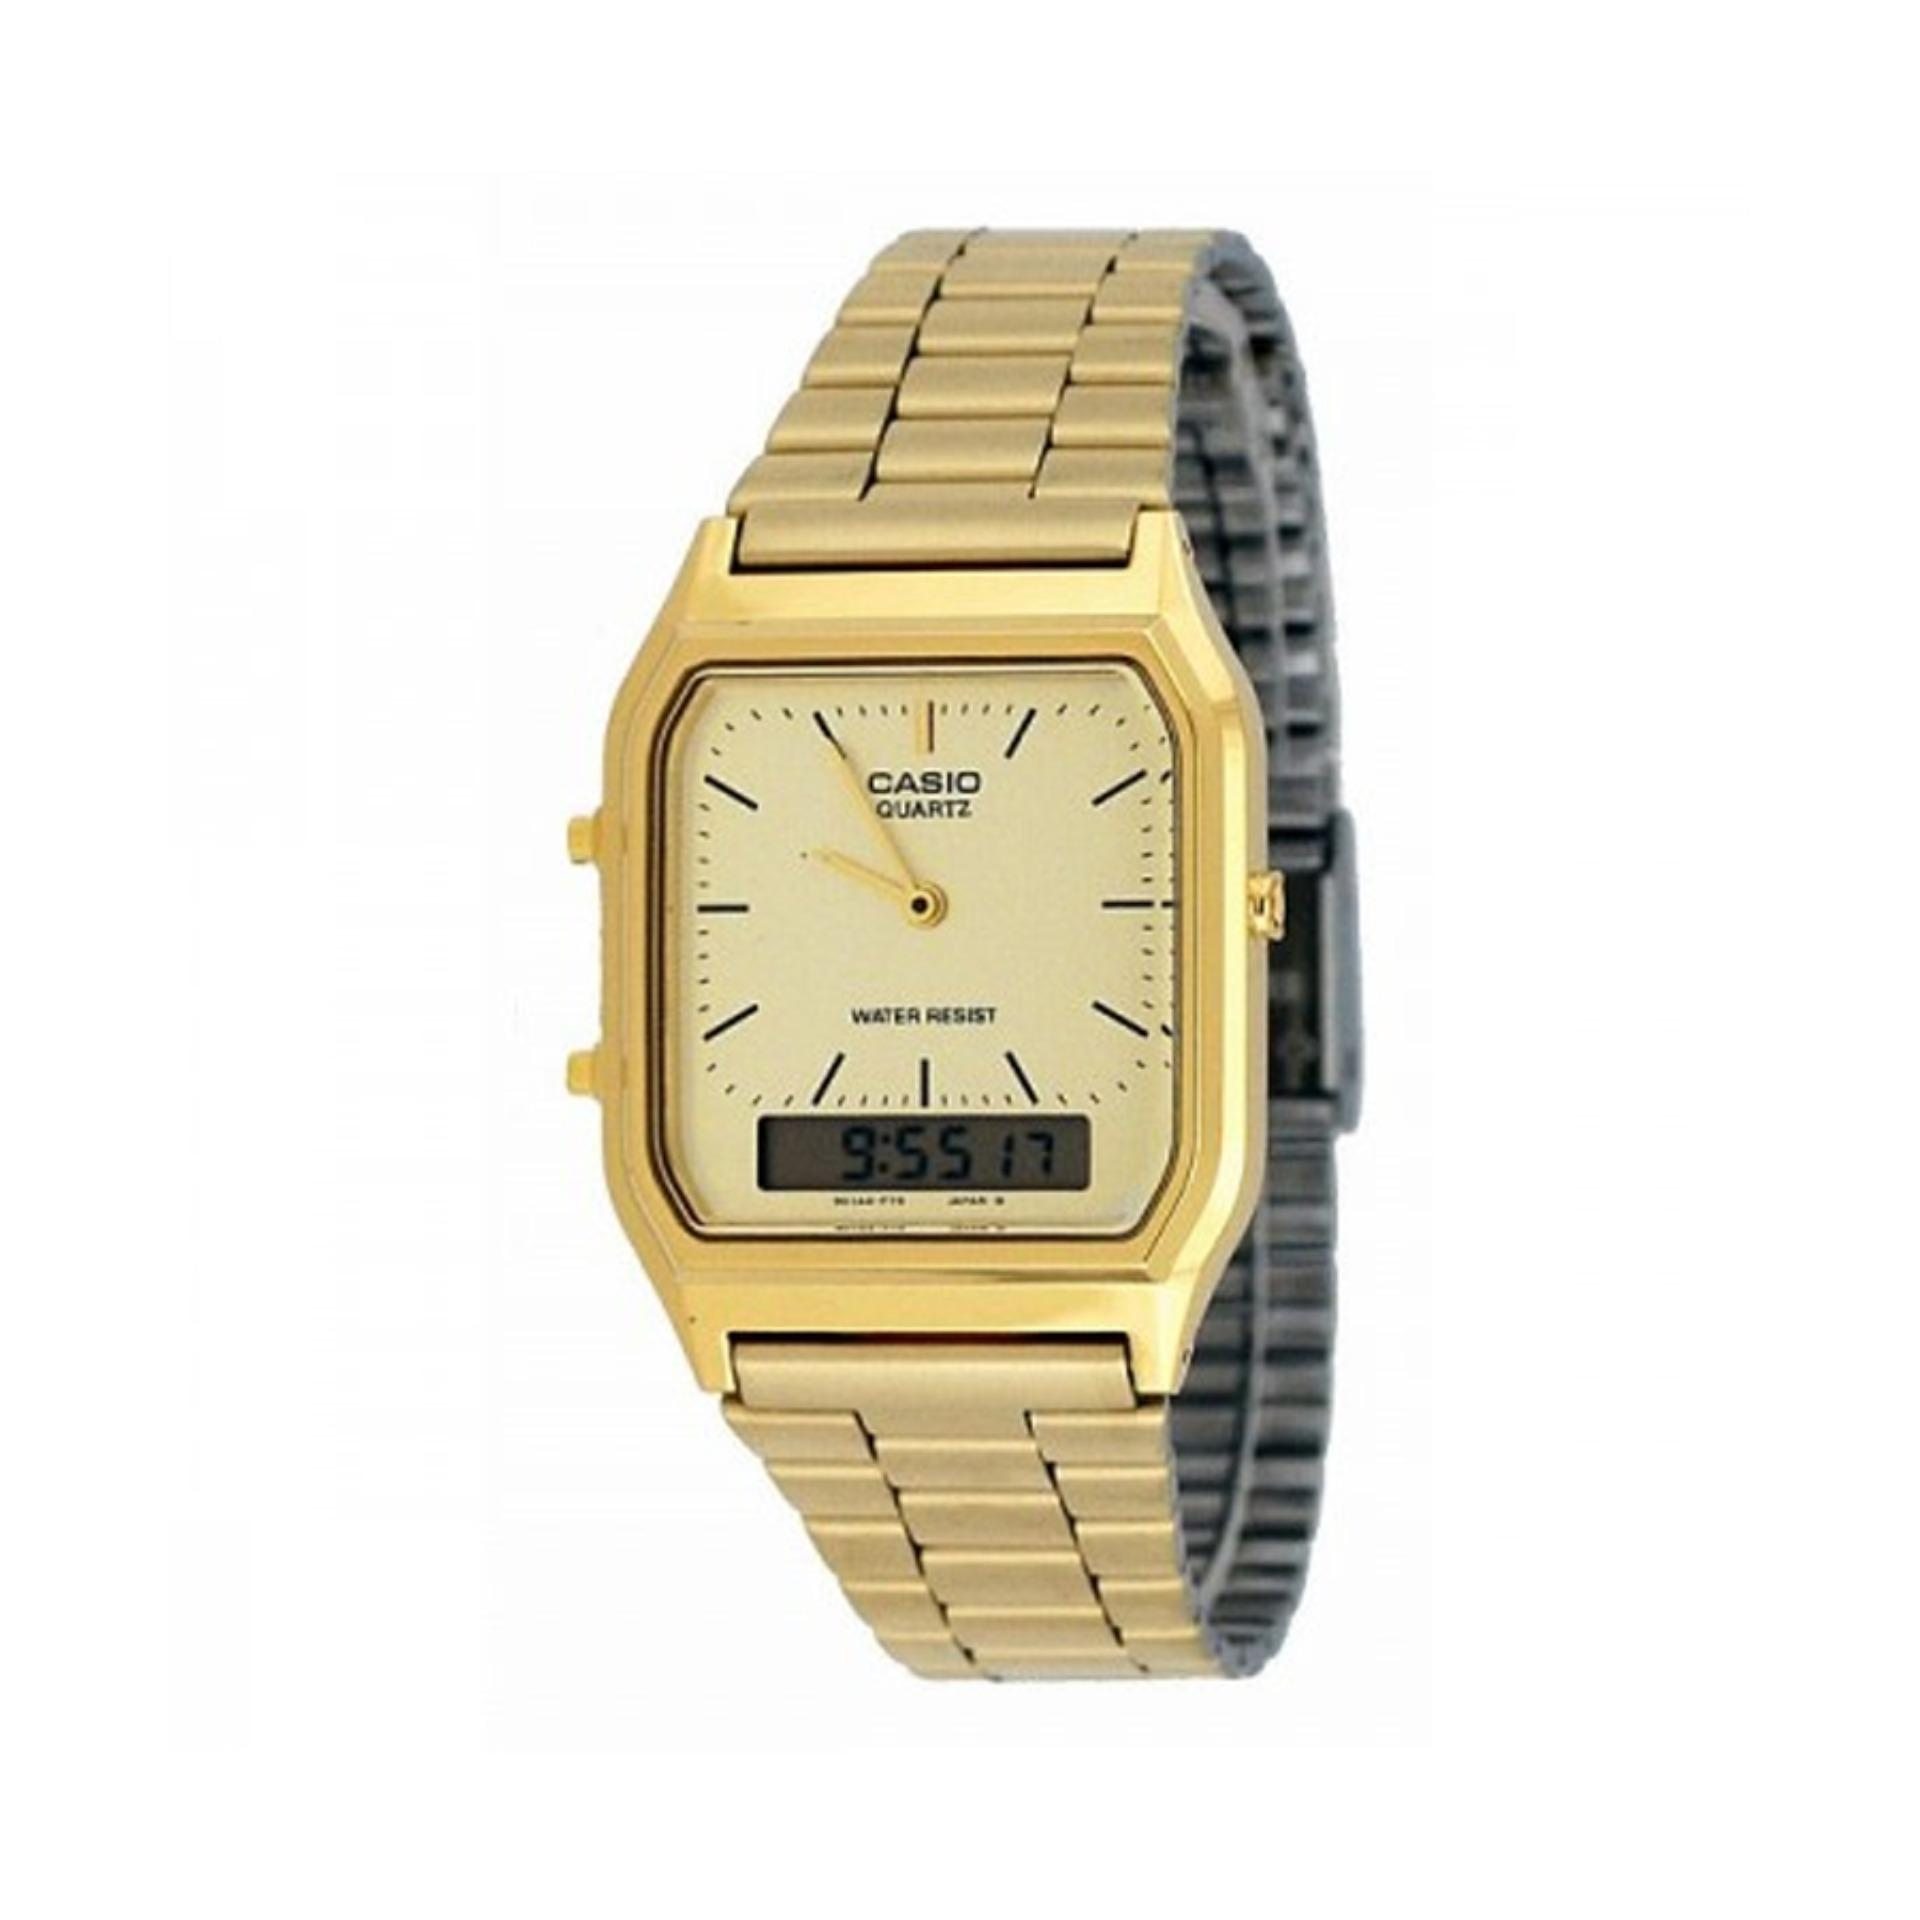 4c72eba92d6 Casio Philippines  Casio price list - Casio Watches for Men   Women for  sale